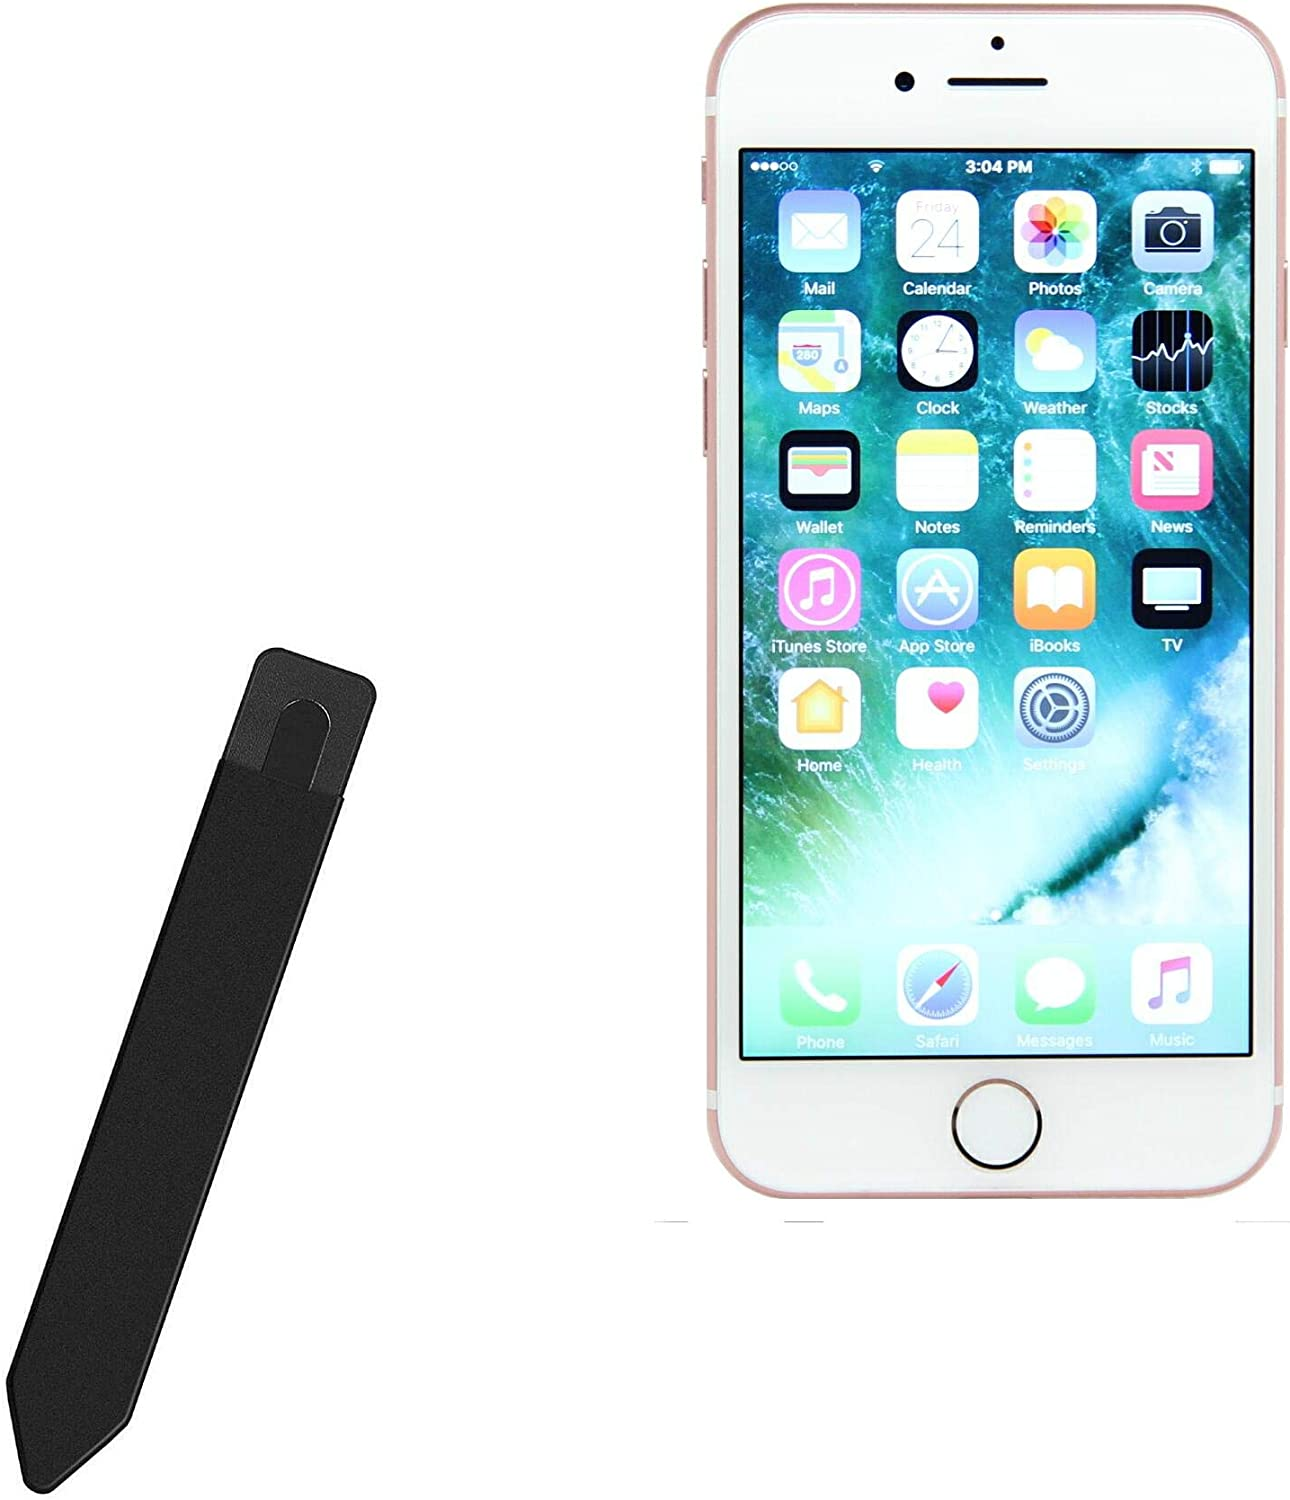 BoxWave Smart Gadget for Apple iPhone 7 [Stylus PortaPouch] Stylus Holder Carrier Portable Self-Adhesive for Apple iPhone 7 - Jet Black